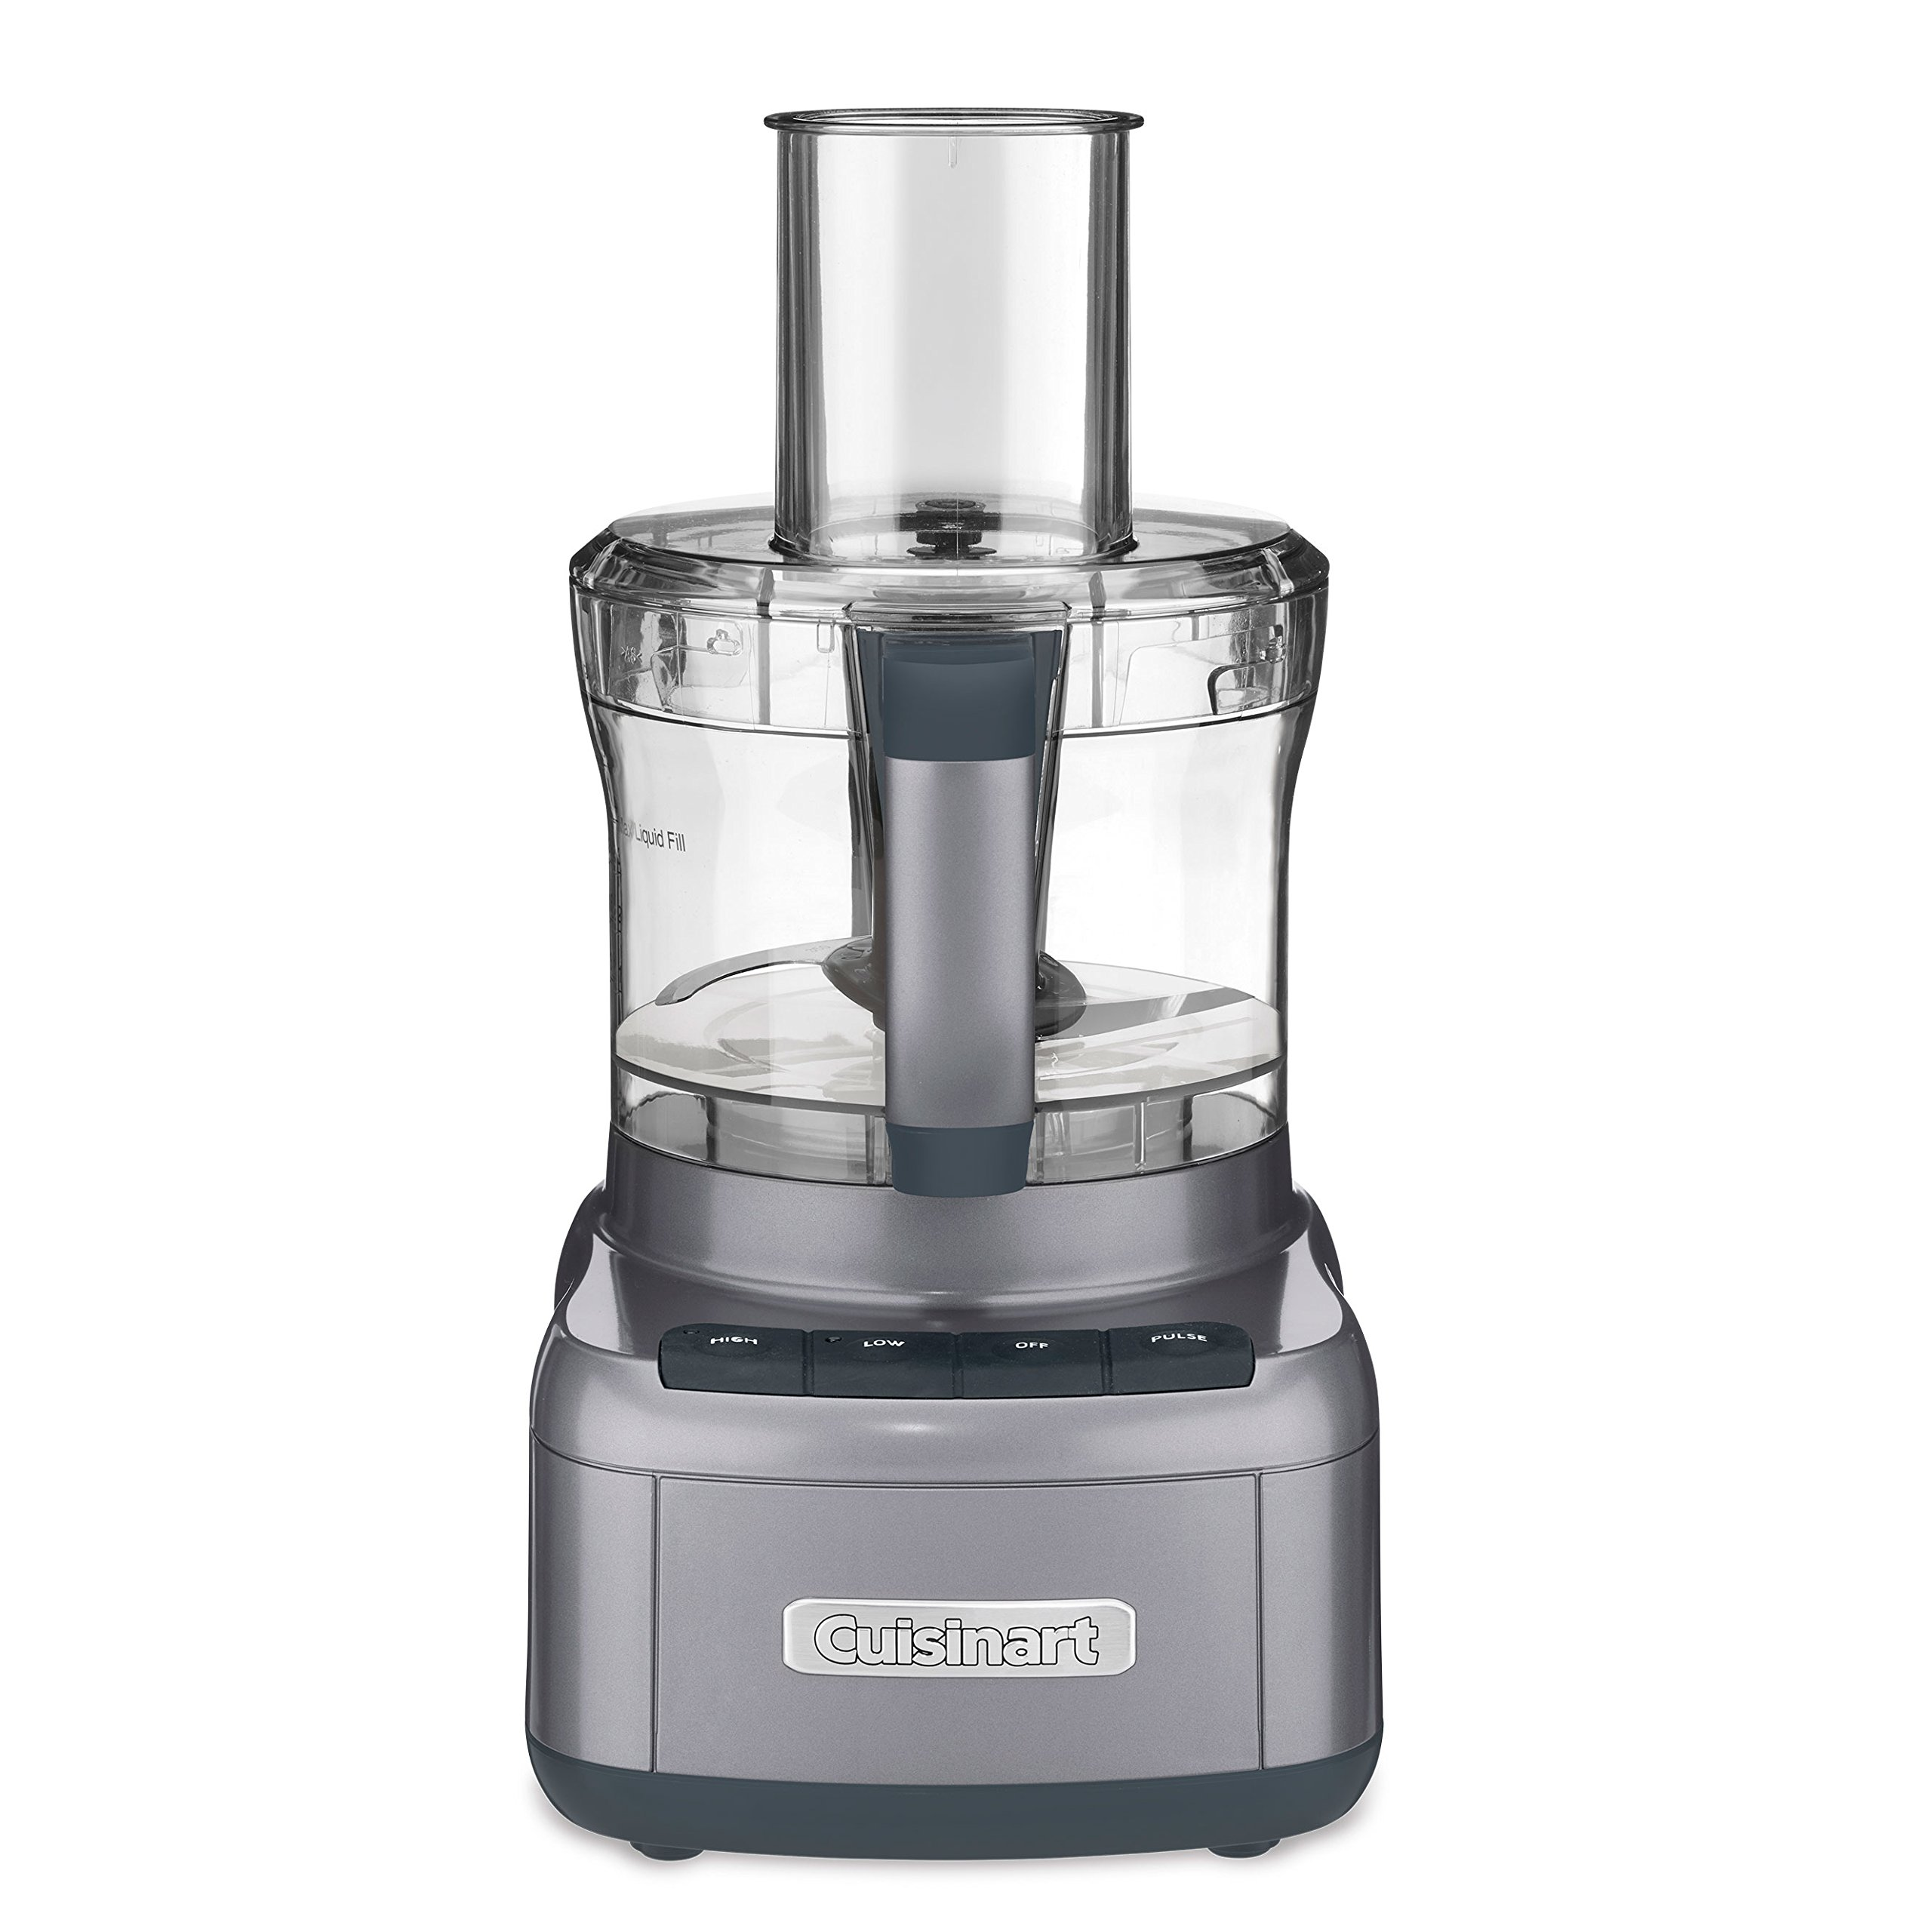 Cuisinart FP-8GMFR 8 Cup Food Processor, Gunmetal (Certified Refurbished)